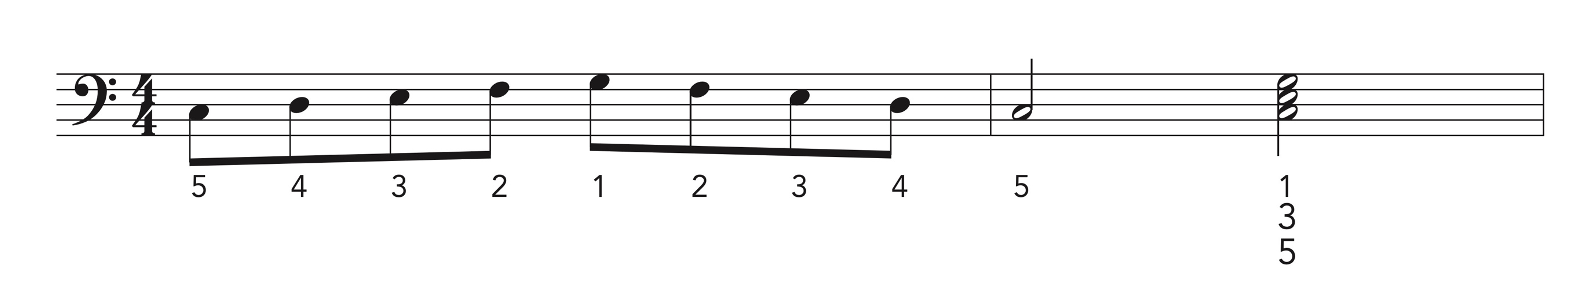 Left hand piano exercises written in music notation